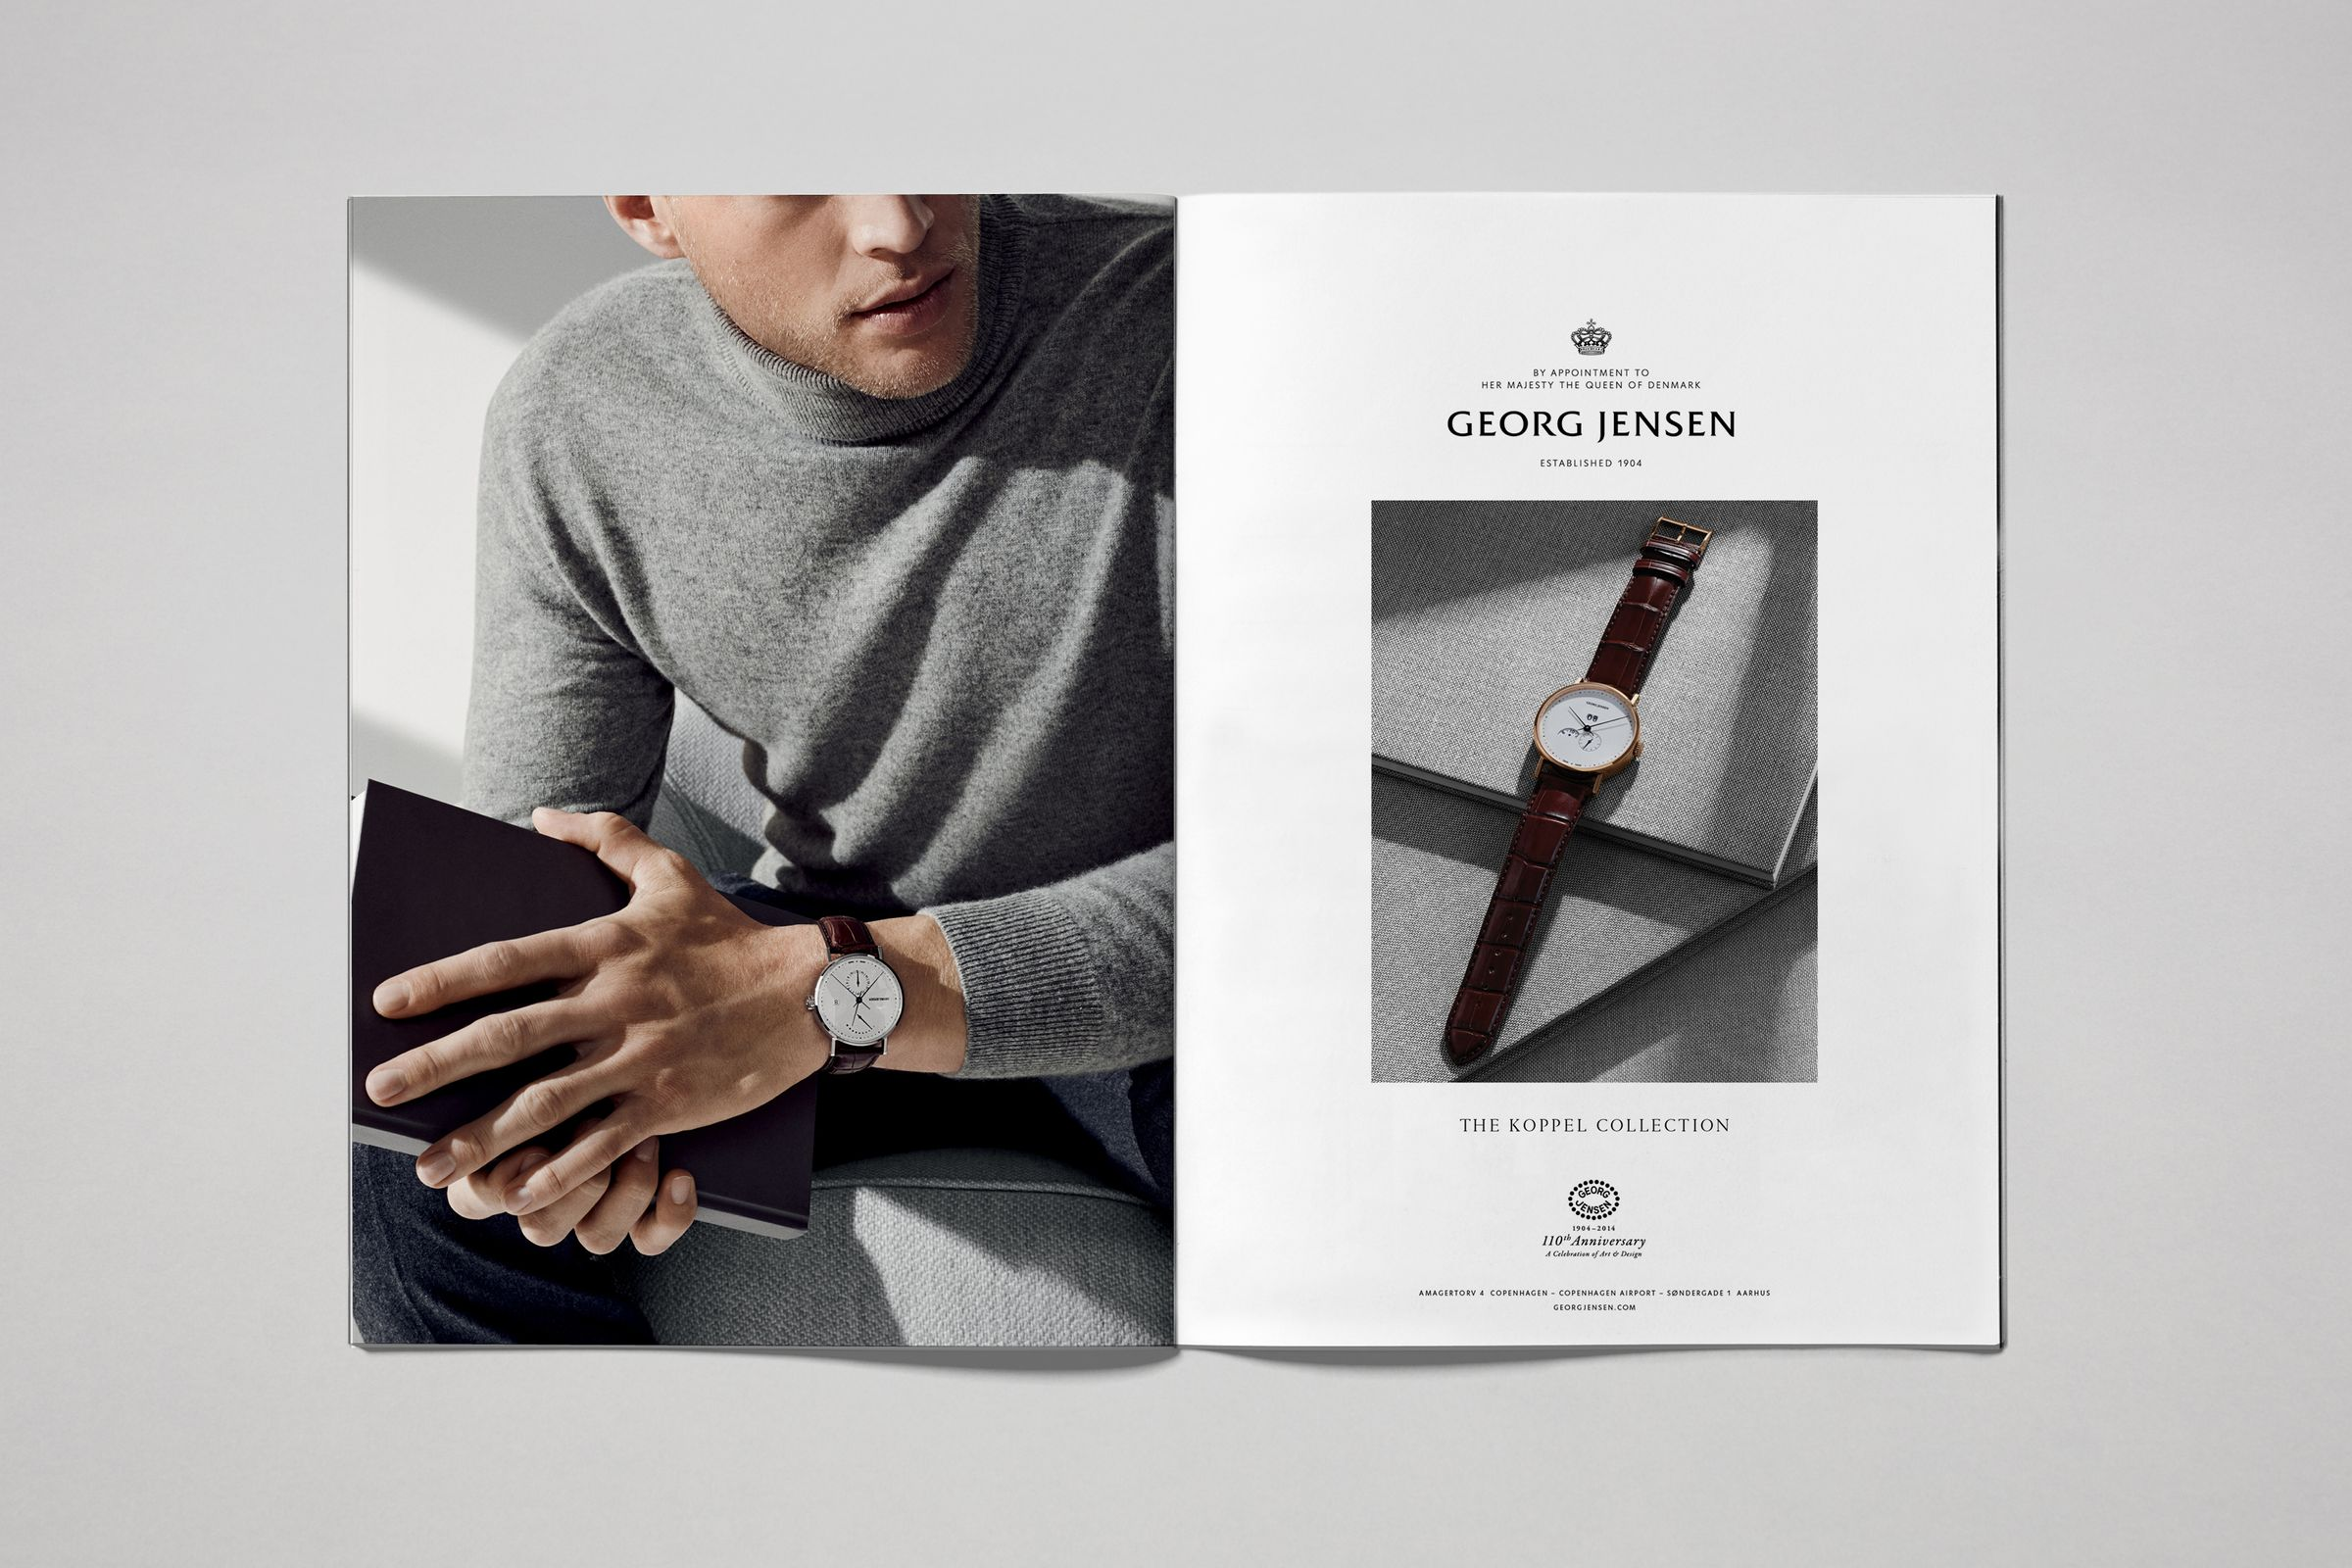 Georg Jensen men's watches campaign photographed by Hasse Nielsen and Toby McFarlan Pond